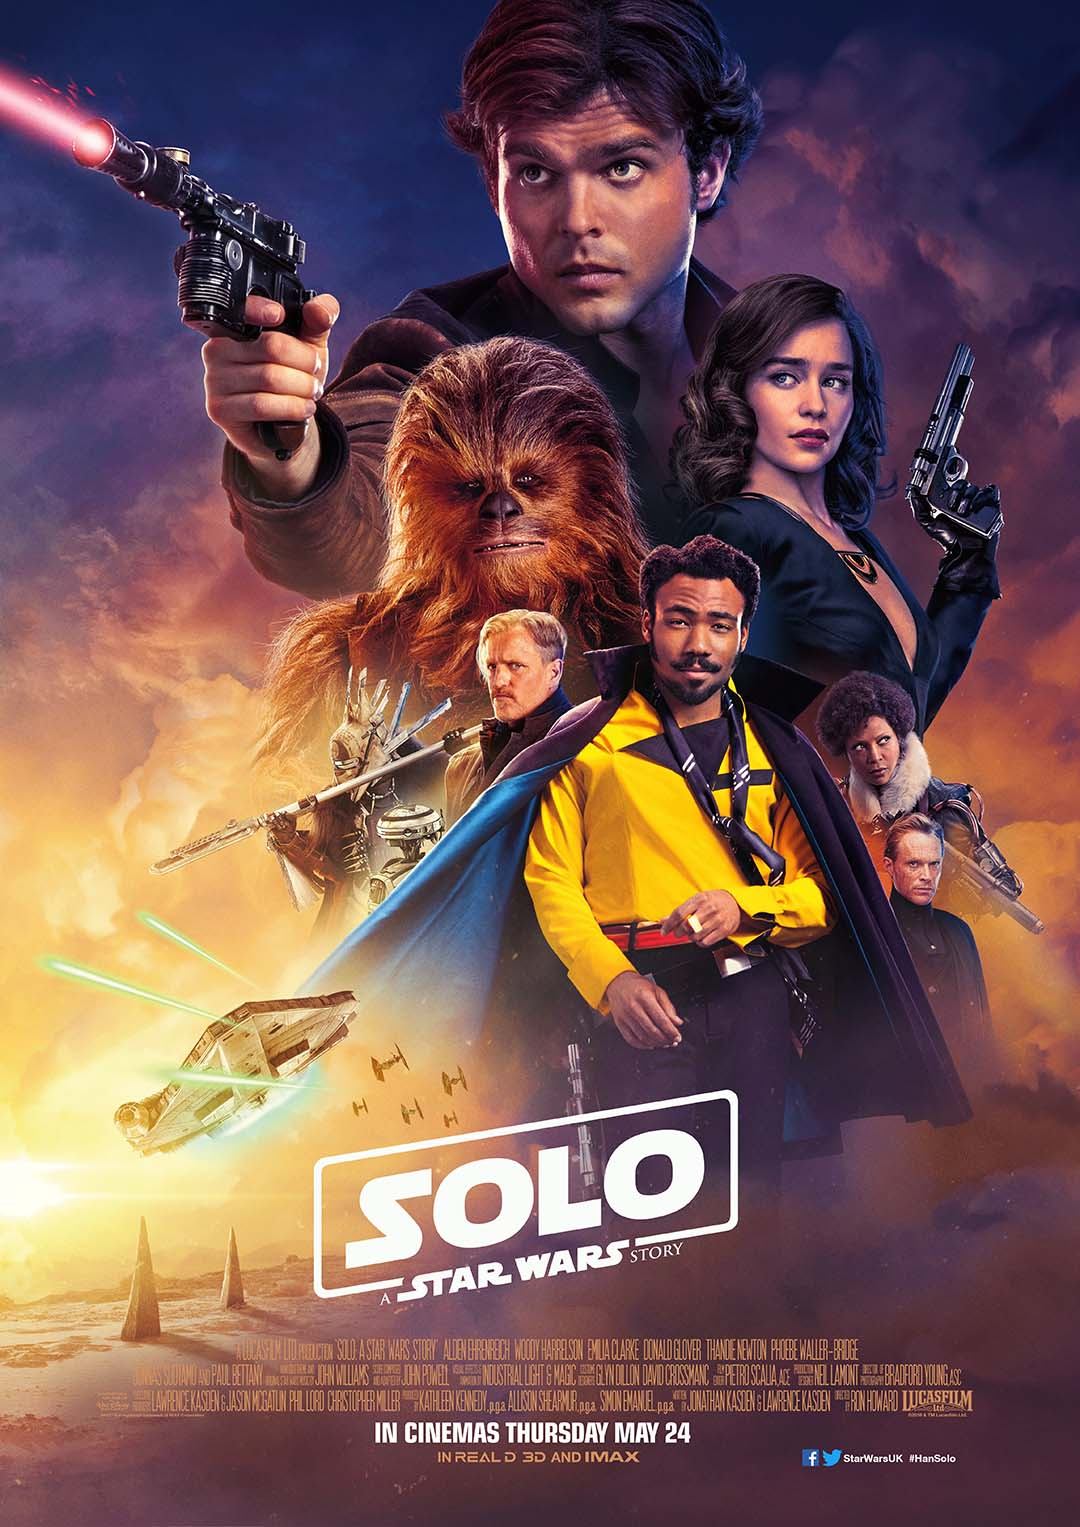 Solo A Star Wars Story UK Theatrical Poster Ron Howard and company recapture some of the old magic that made the Star Wars saga legendary in this exciting blockbusterSolo: A Star Wars Story.